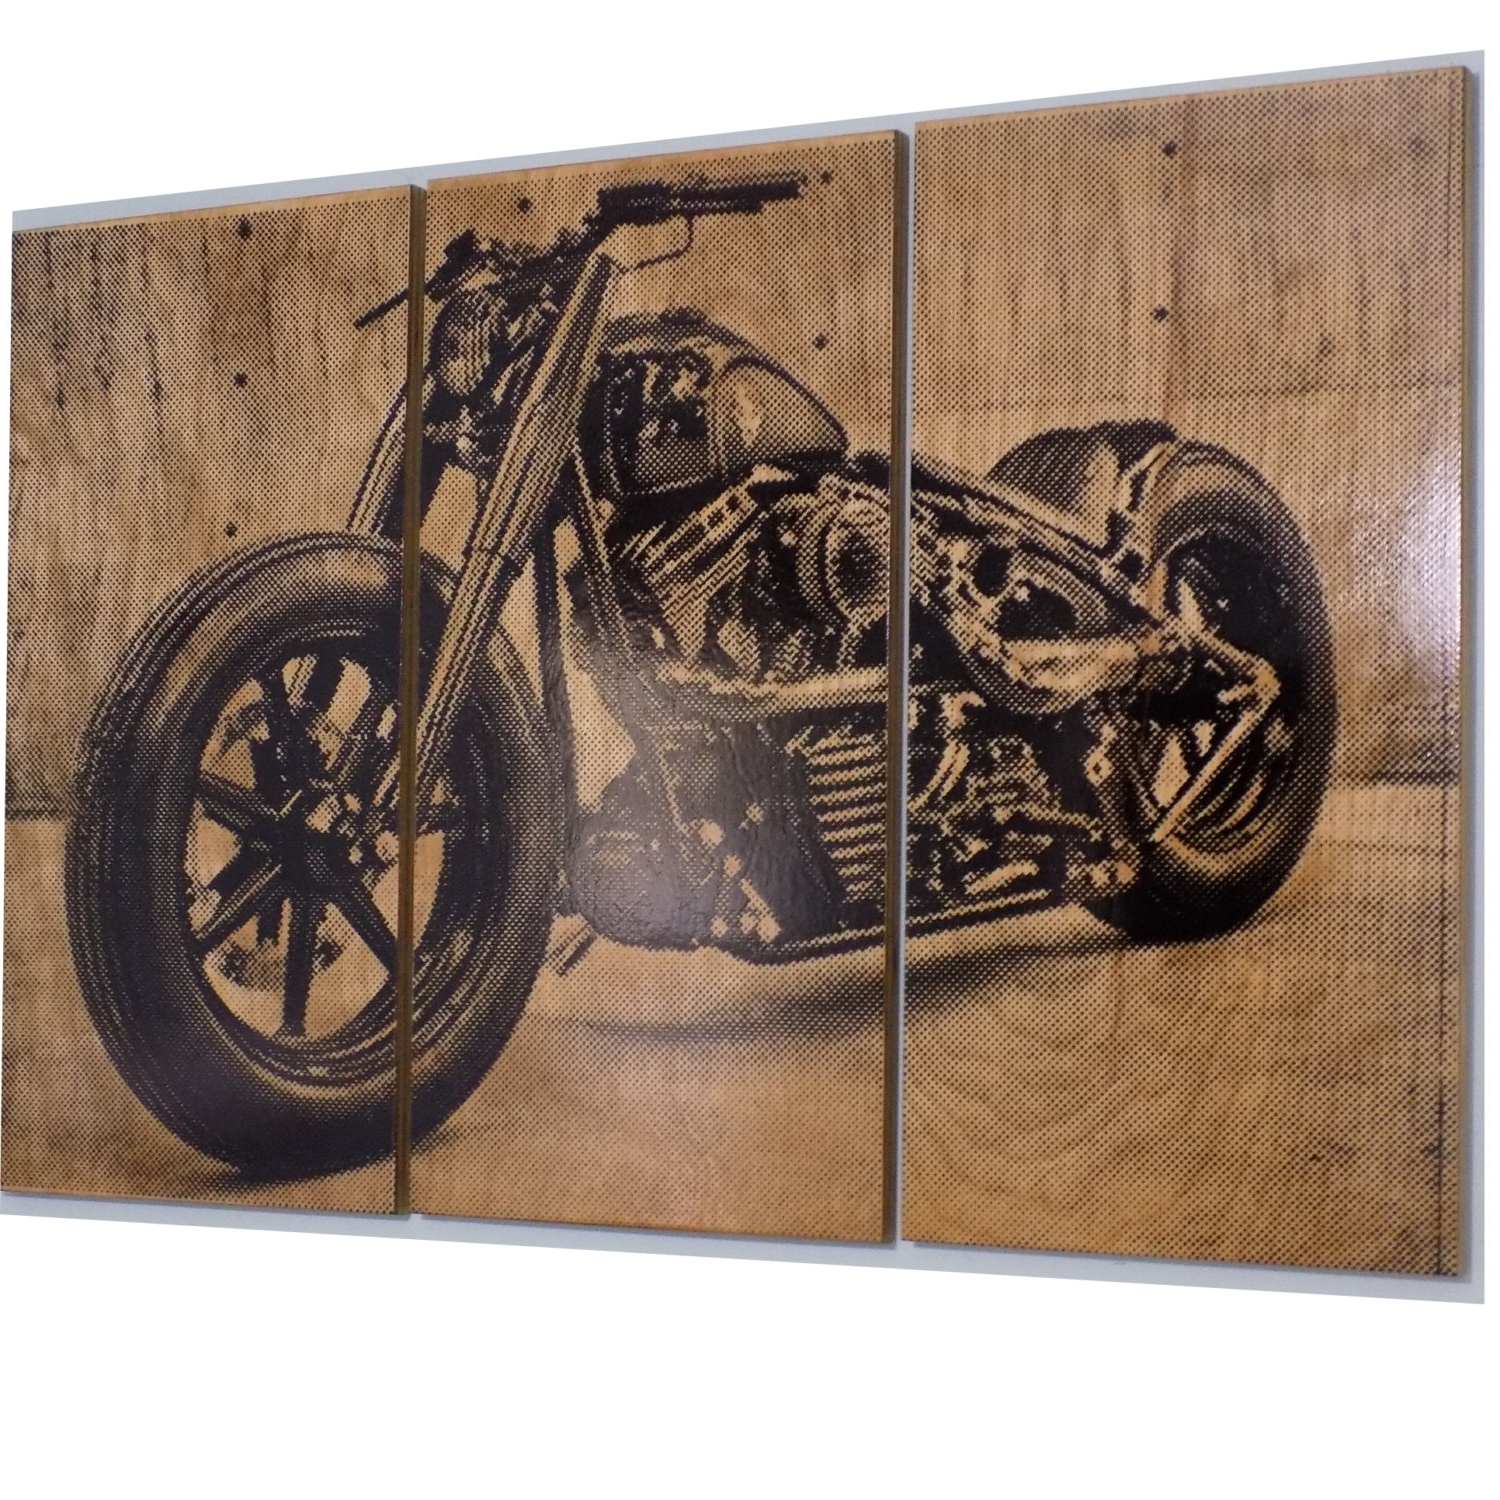 Harley Davidson Fatboy / Softail / Motorcycle / Bike Print, Harley Within Favorite Harley Davidson Wall Art (View 5 of 20)